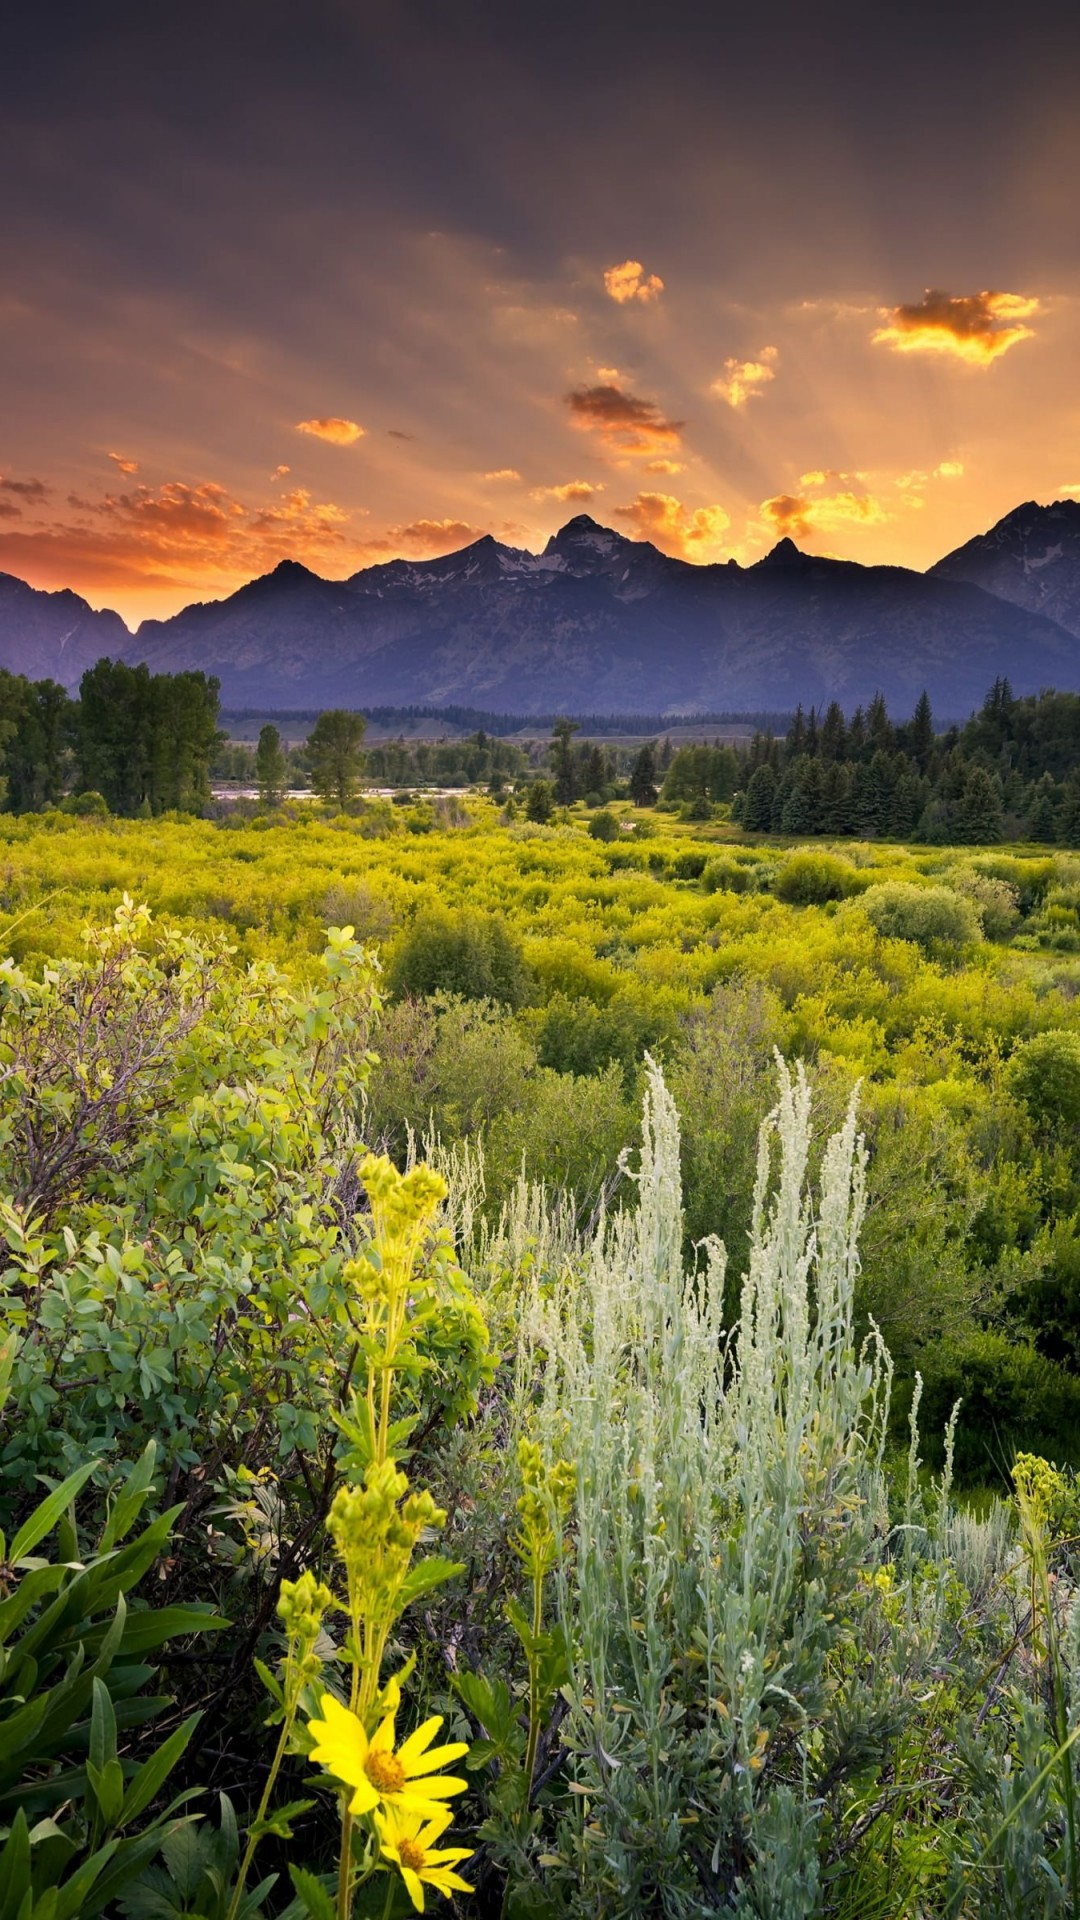 Sunset in Grand Teton National Park Wallpaper for SONY Xperia Z2